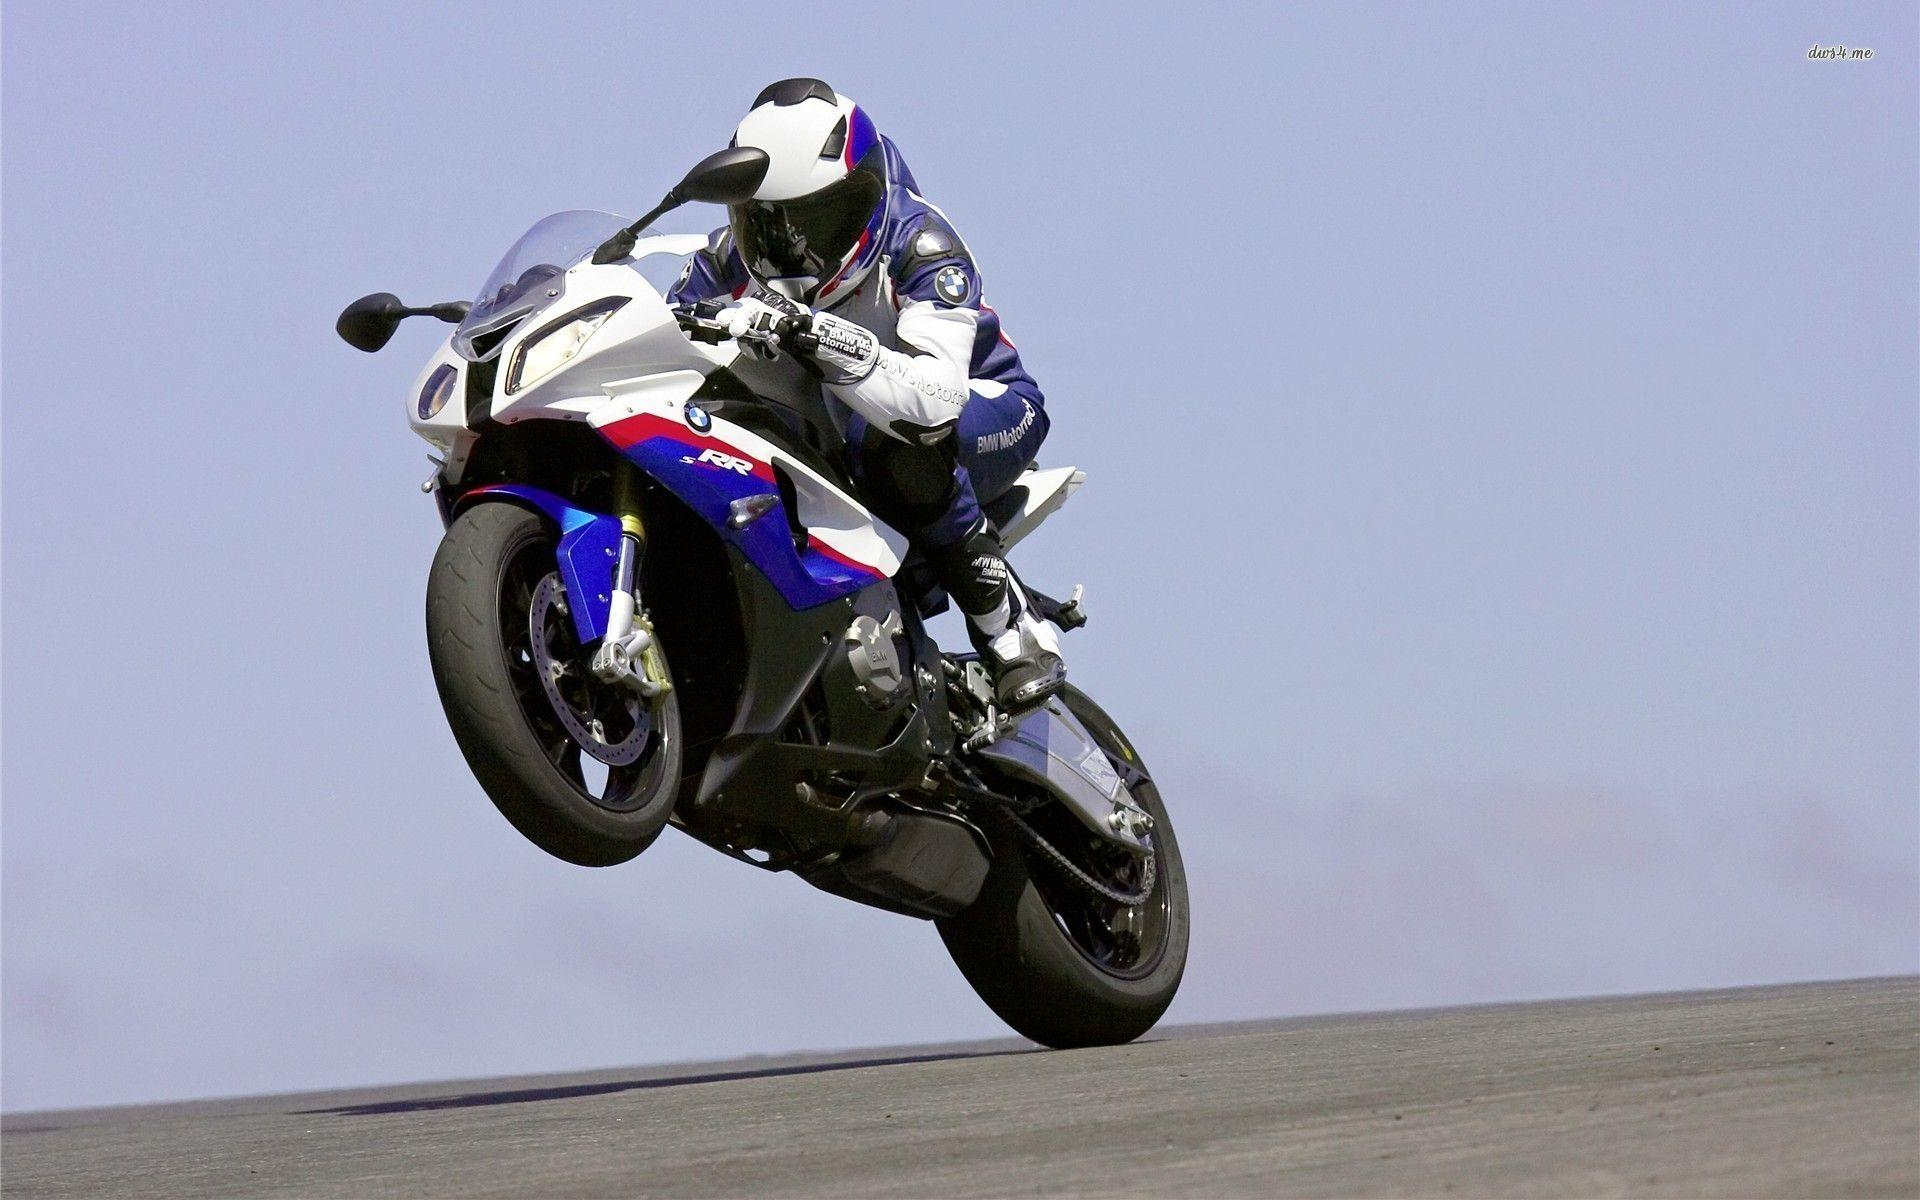 Bmw S1000rr Hp4 Bmw Bike Wallpapers: BMW S1000RR Wallpapers